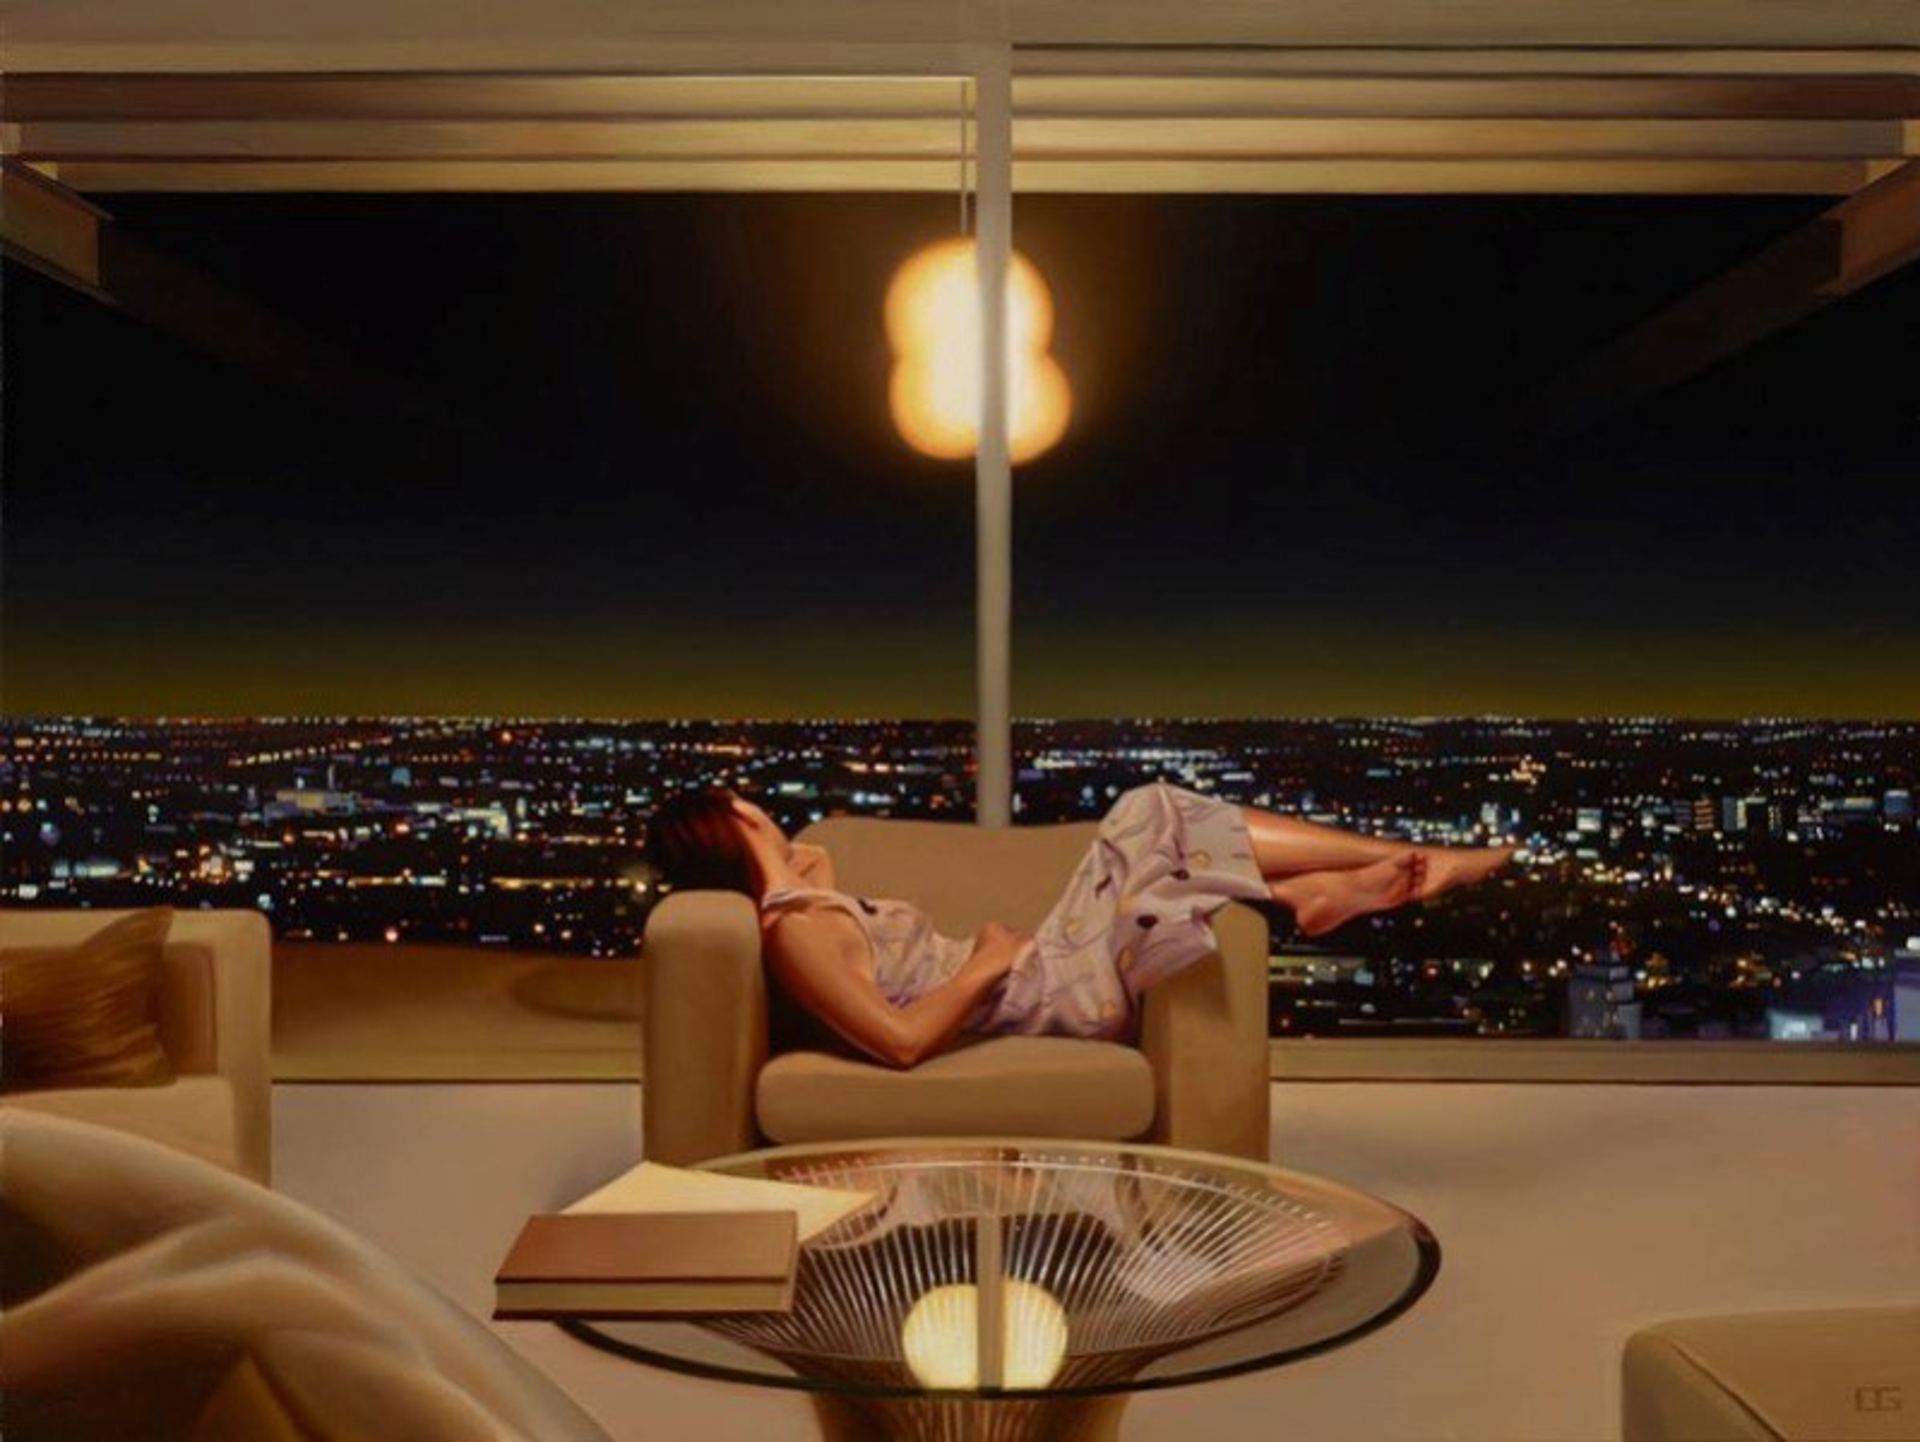 Drifting Through Light, Stahl House (S/N) by Carrie Graber